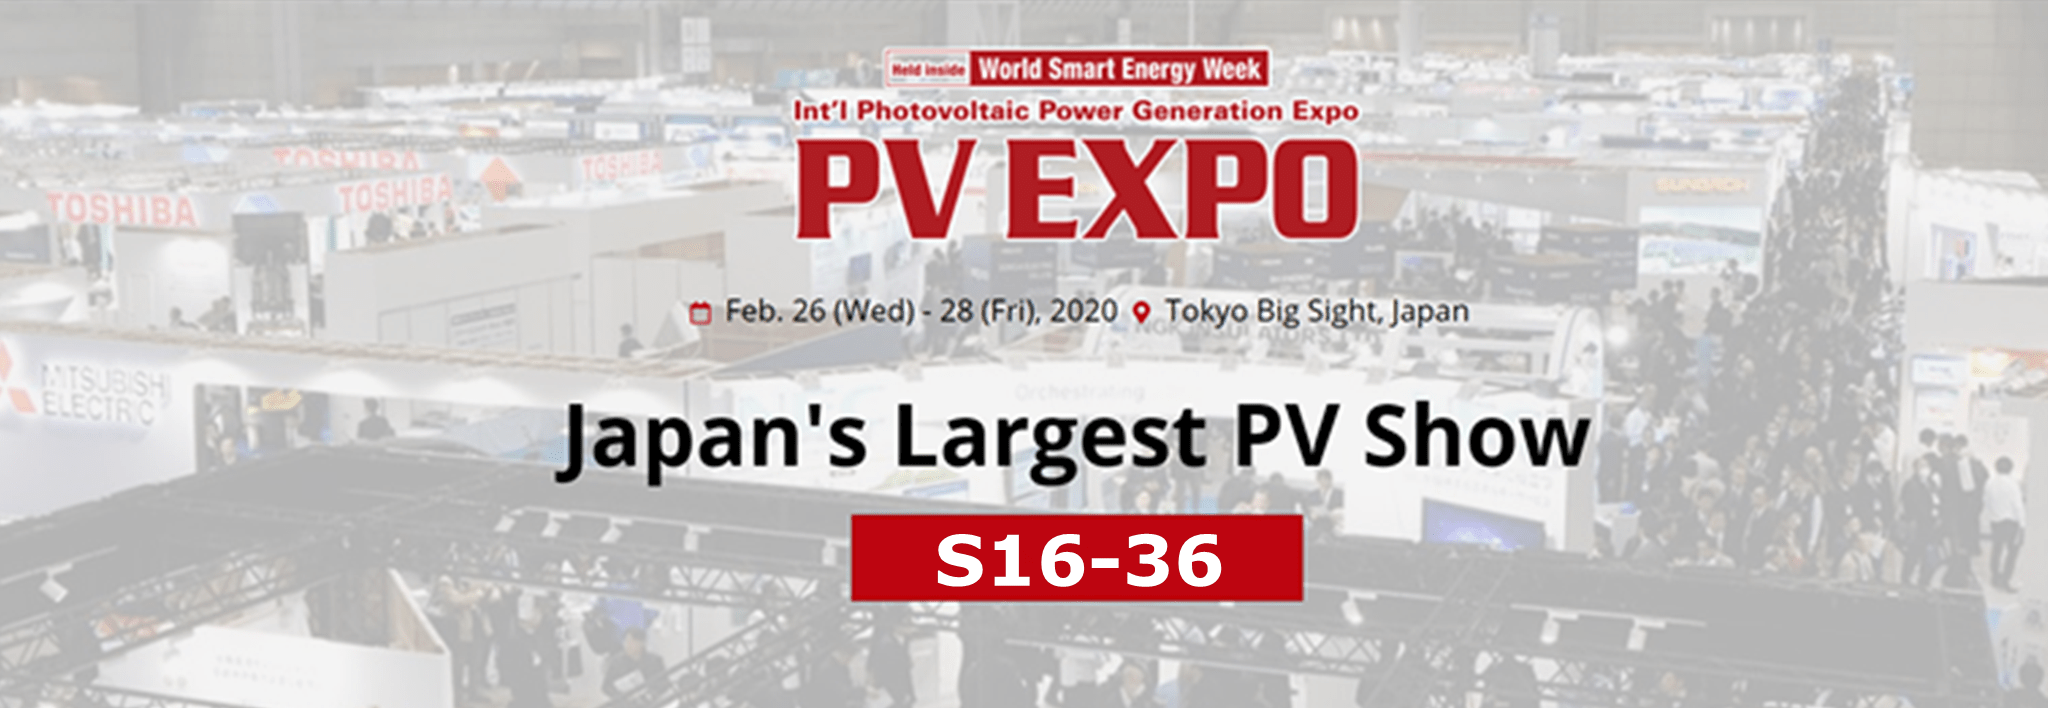 Clenergy at PV EXPO 2020 Invitation Letter